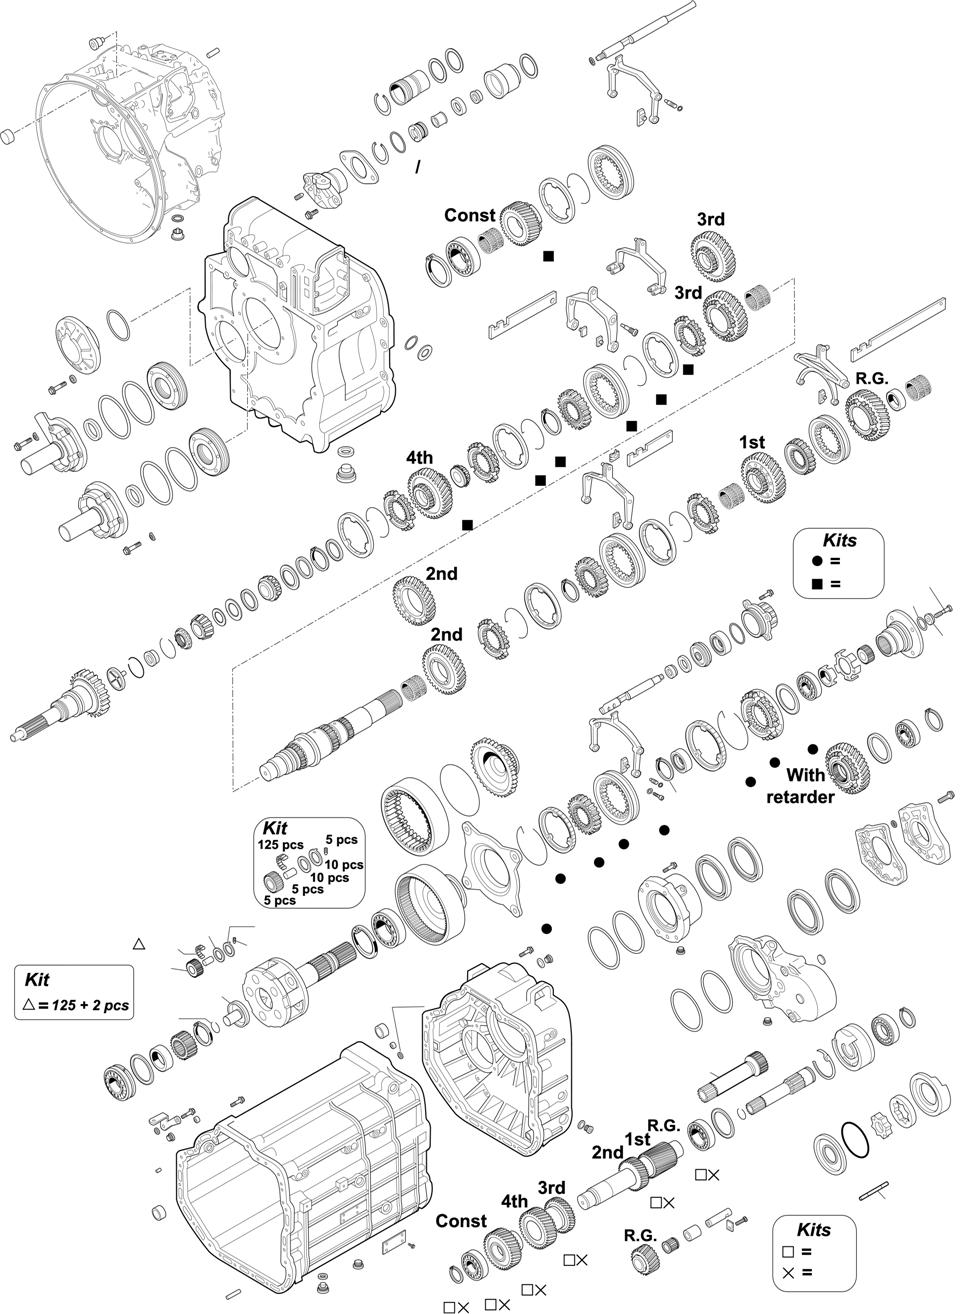 For Gearbox Series: 715.261-400-410-411-520-521 G240-16/11,7-0,69 / 715.260 G240-16/11,7-0,69 EPS CHASSIS: 625/655/656/657/658/659.XXX SK CHASSIS: 930/932/933/934/950/952/953/954.XXX ACTROS